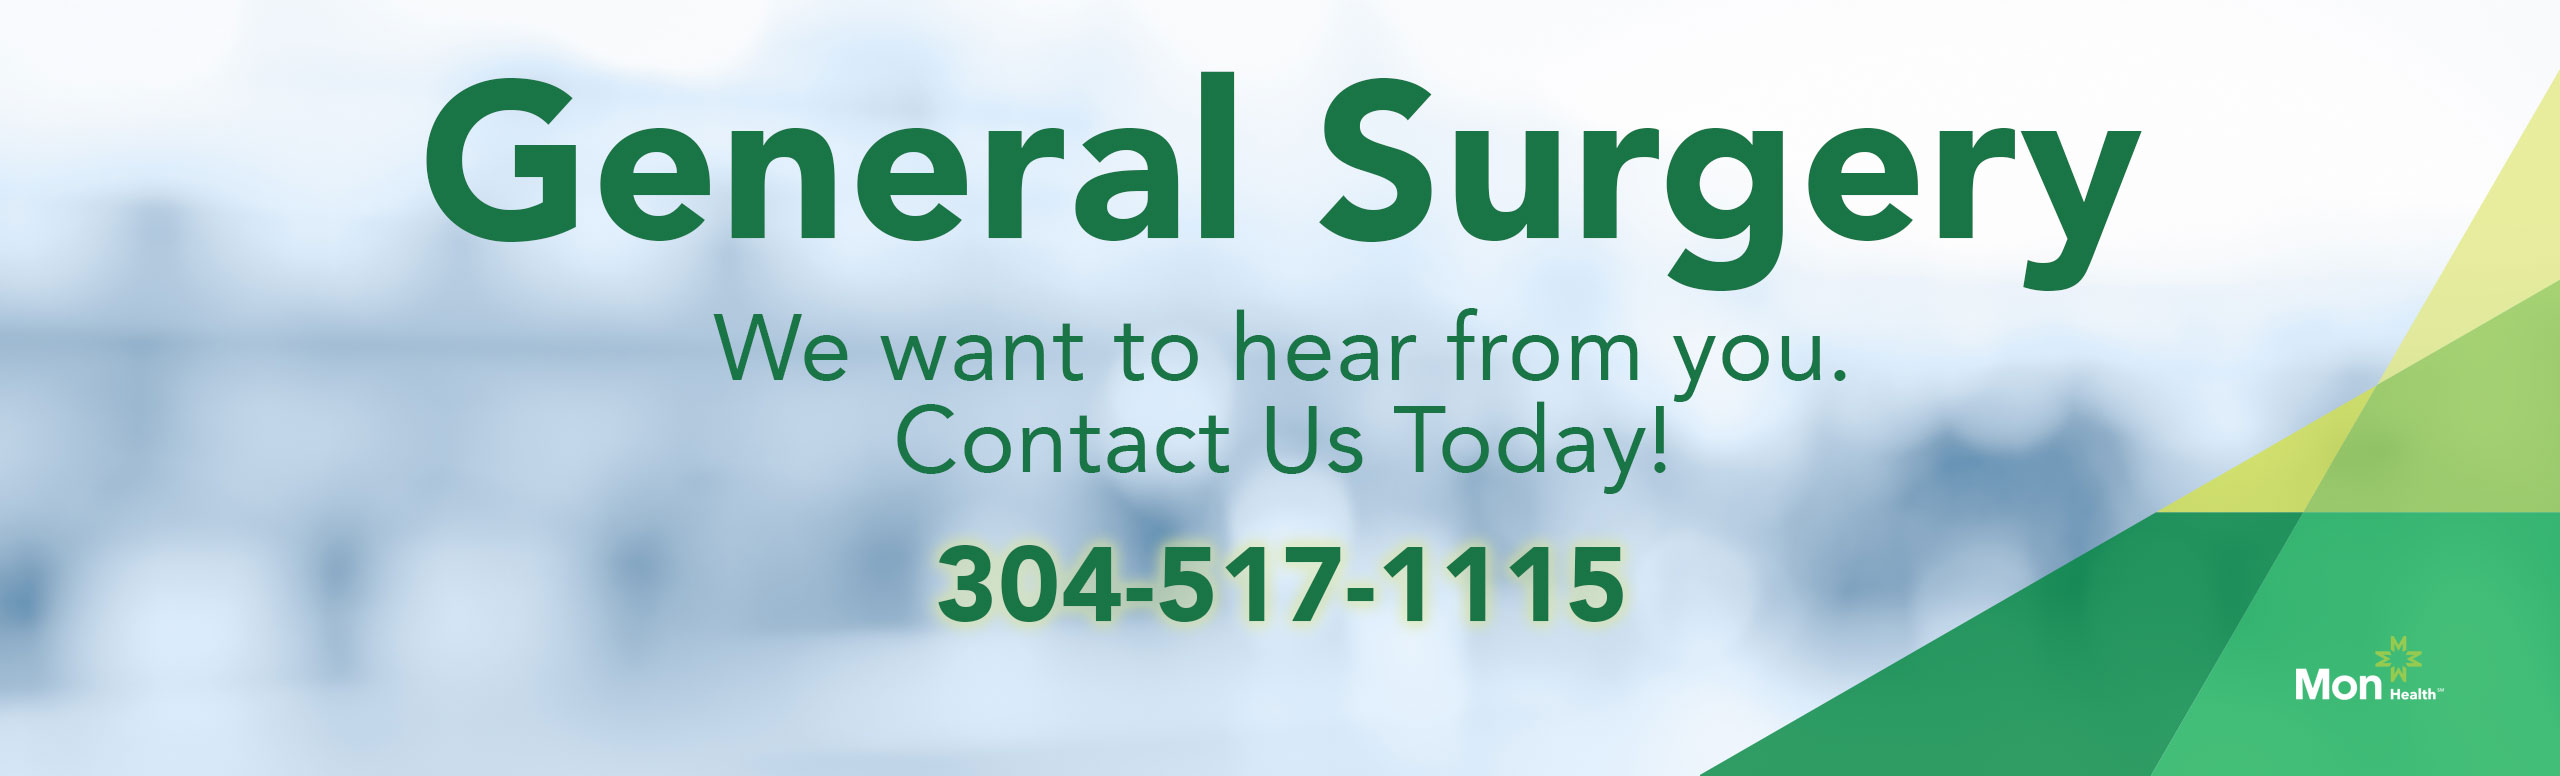 General Surgery: contact numbers are listed for both physicians, Ronald Pearson  304-517-1115. Friendly text reads: We want to hear from you. Contact us today!